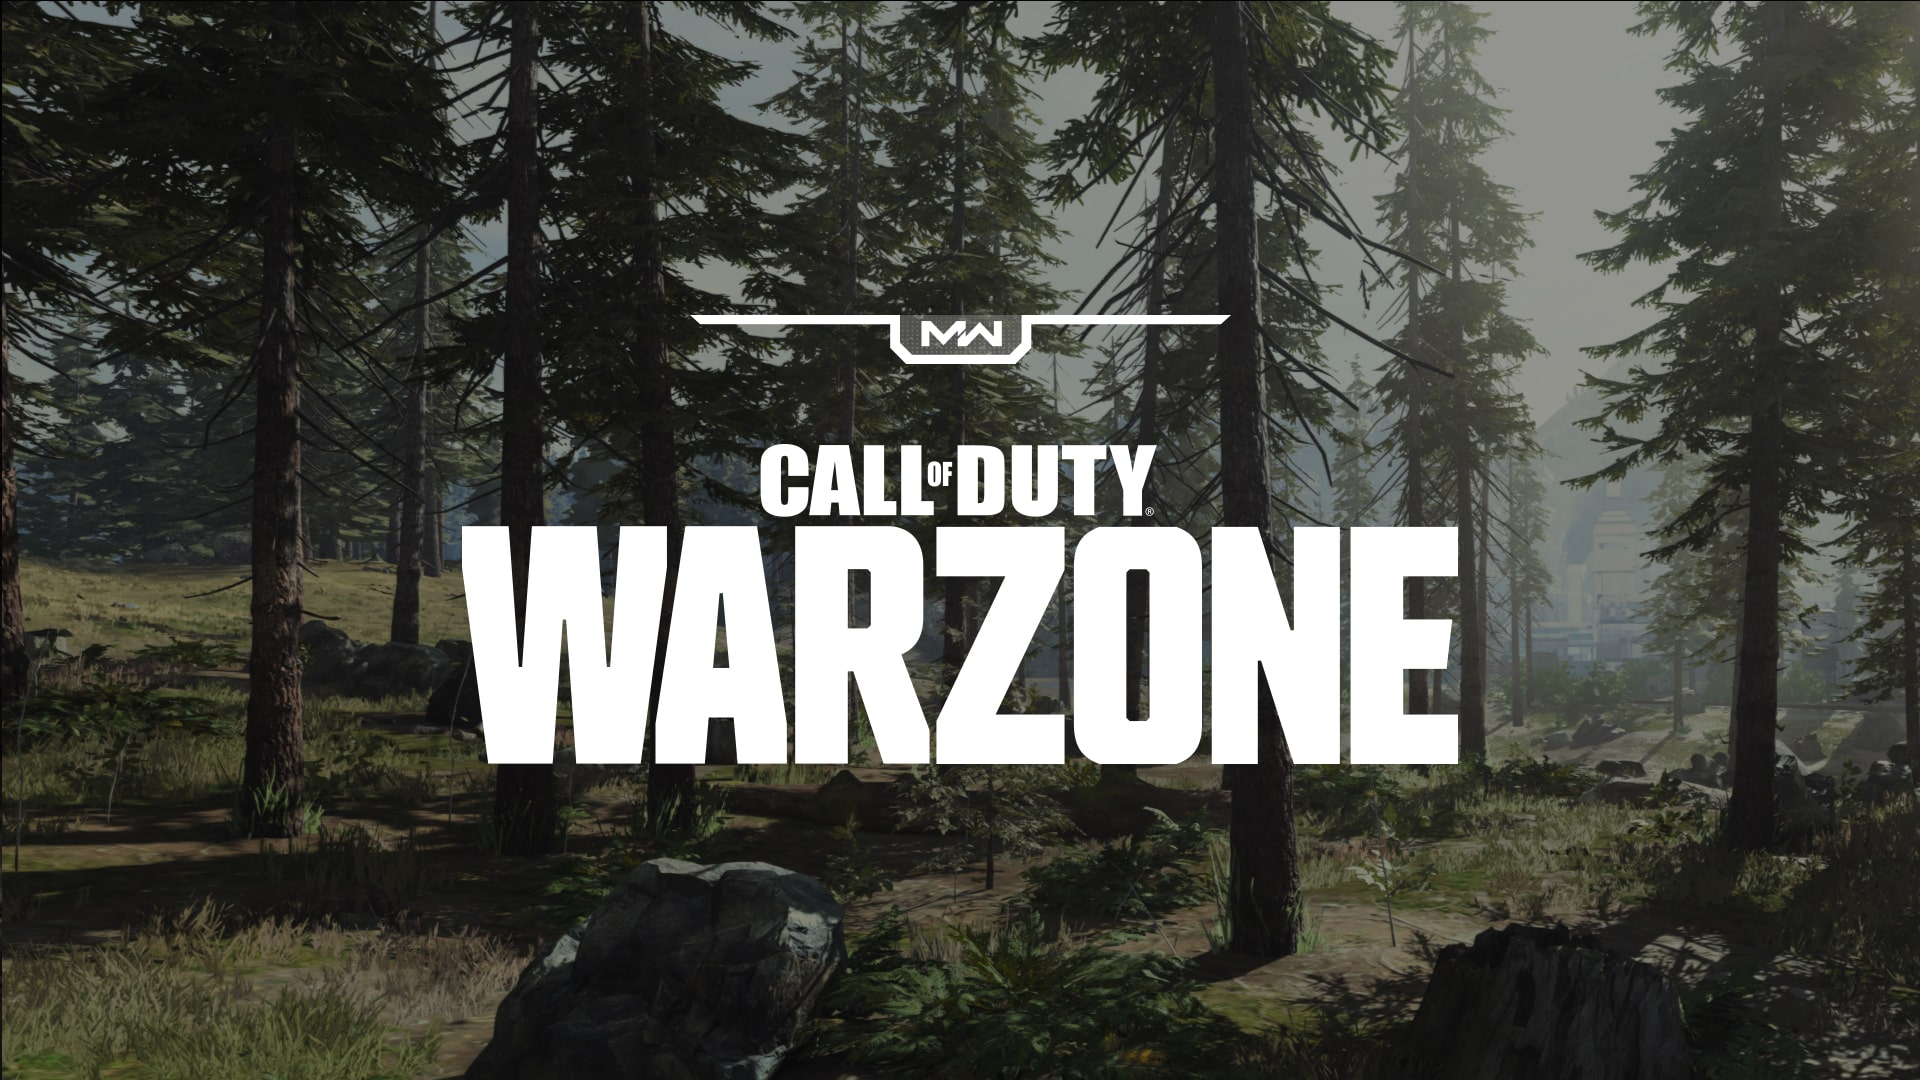 Call Of Duty Warzone The Game Will Also Be Supported During The